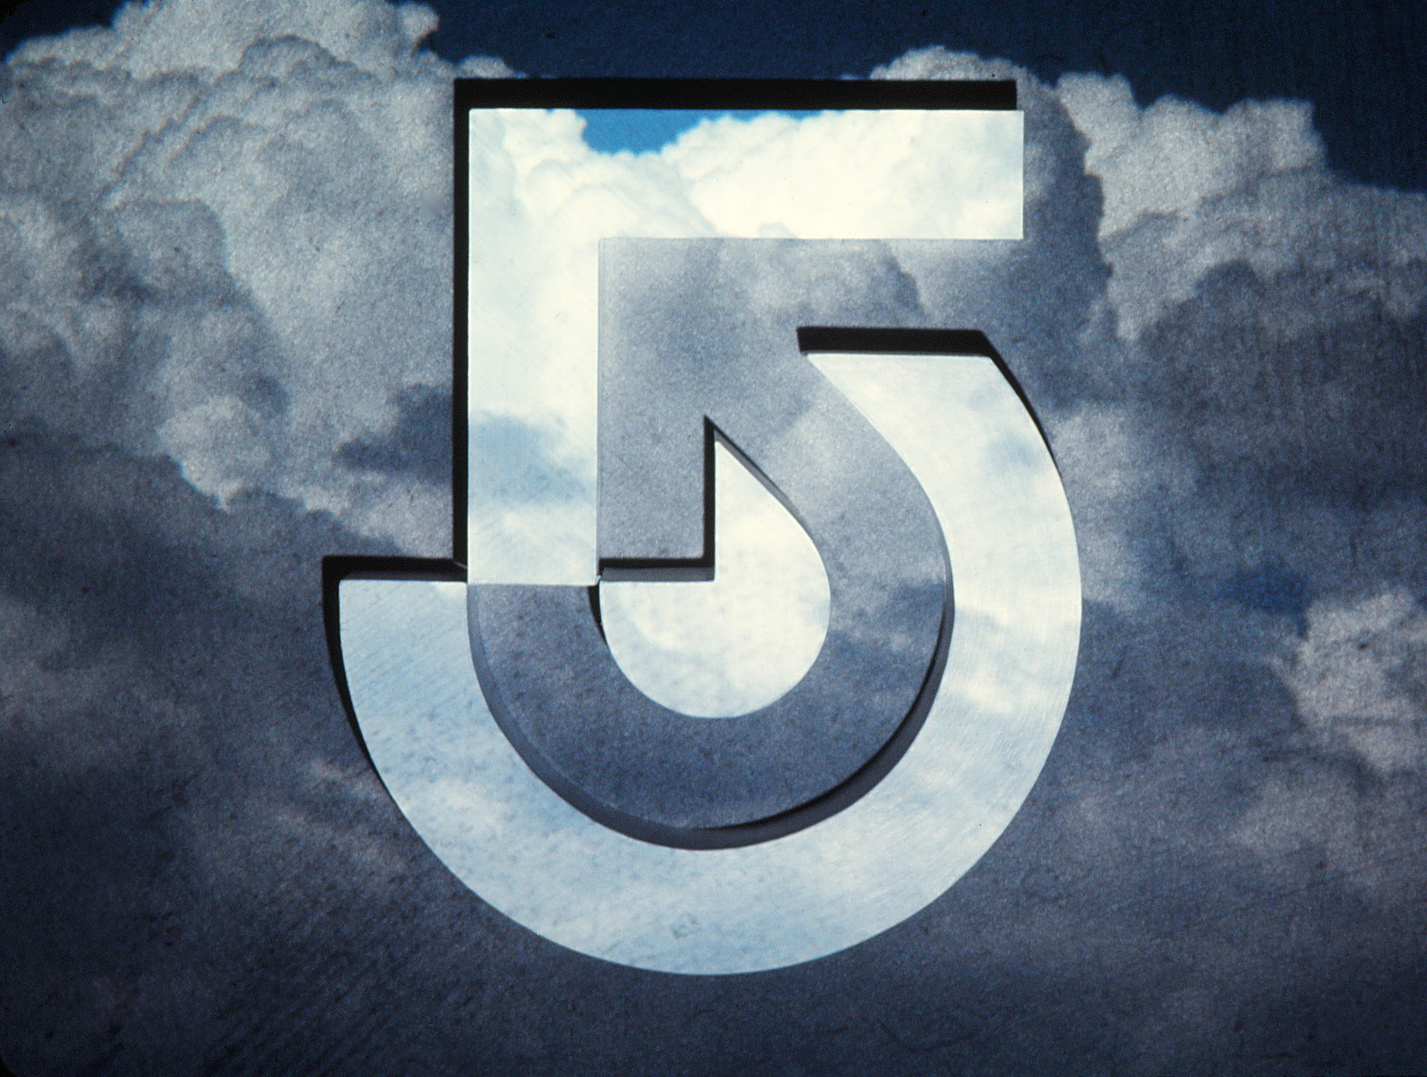 Channel 5 logo with clouds background